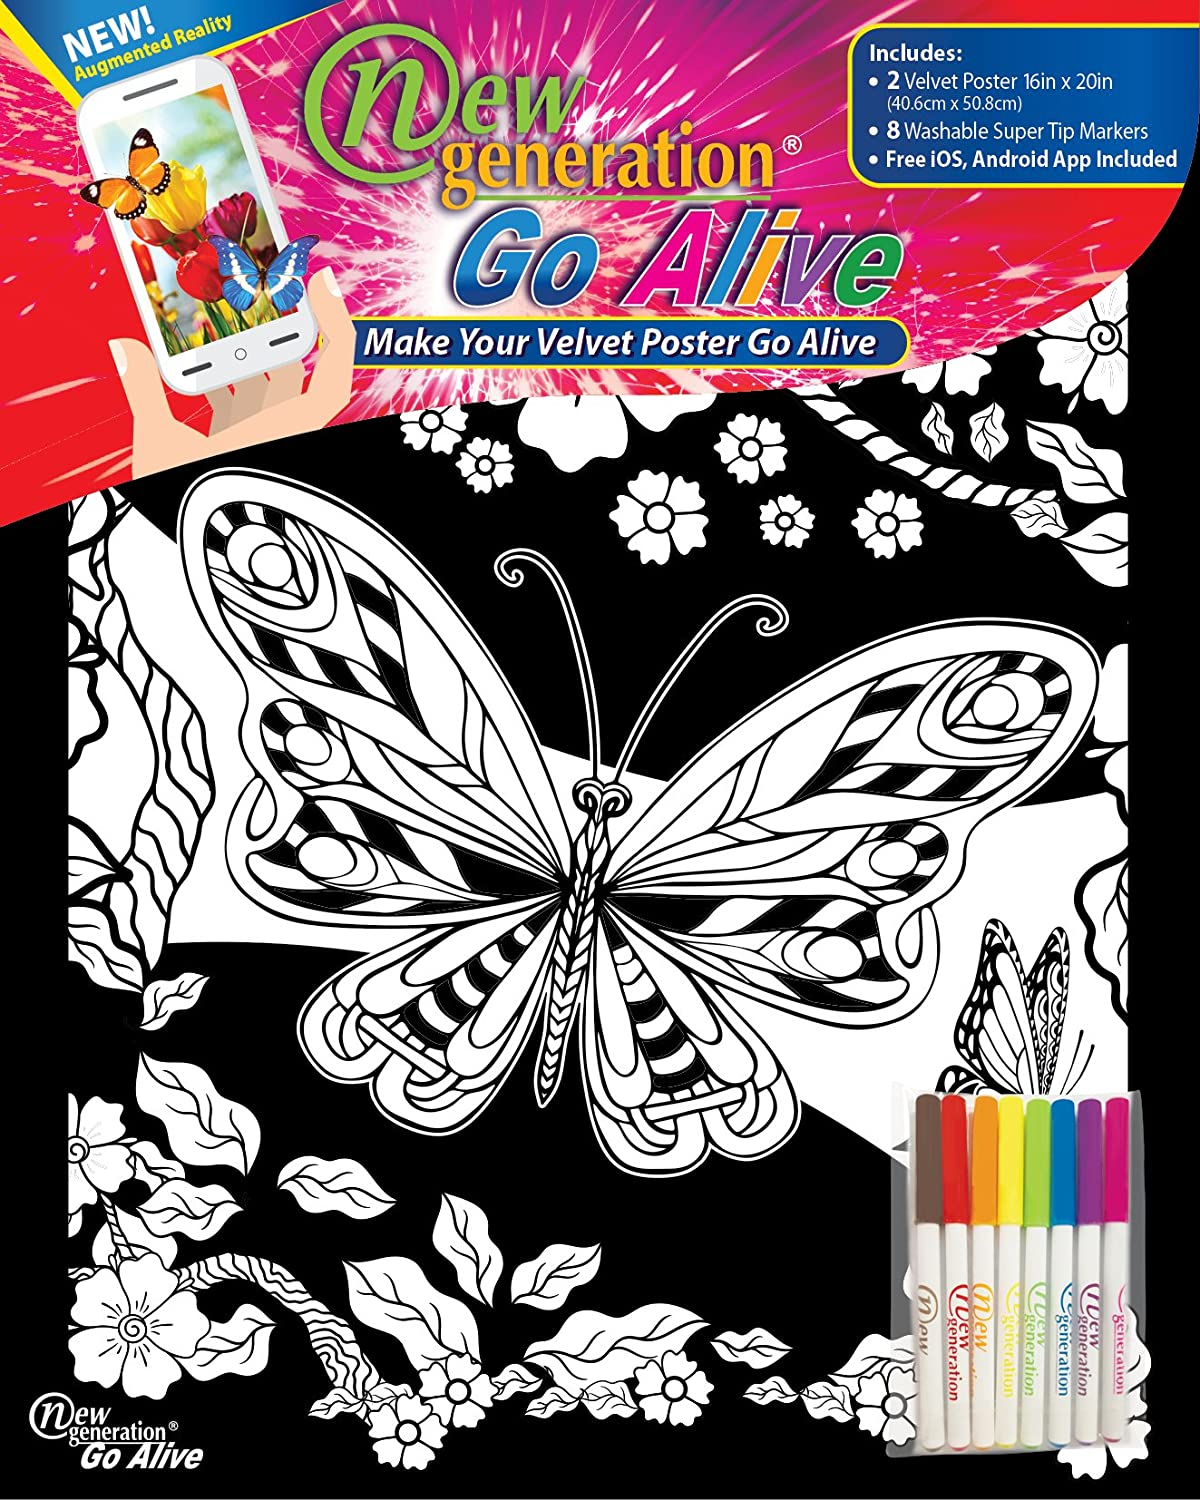 New Generation GO Alive - BUTTERFLY - AUGMENTED REALITY 11x15 Velvet / Fuzzy Posters - 2 PACK of Velvet Posters NC Consulting Corp. 7696